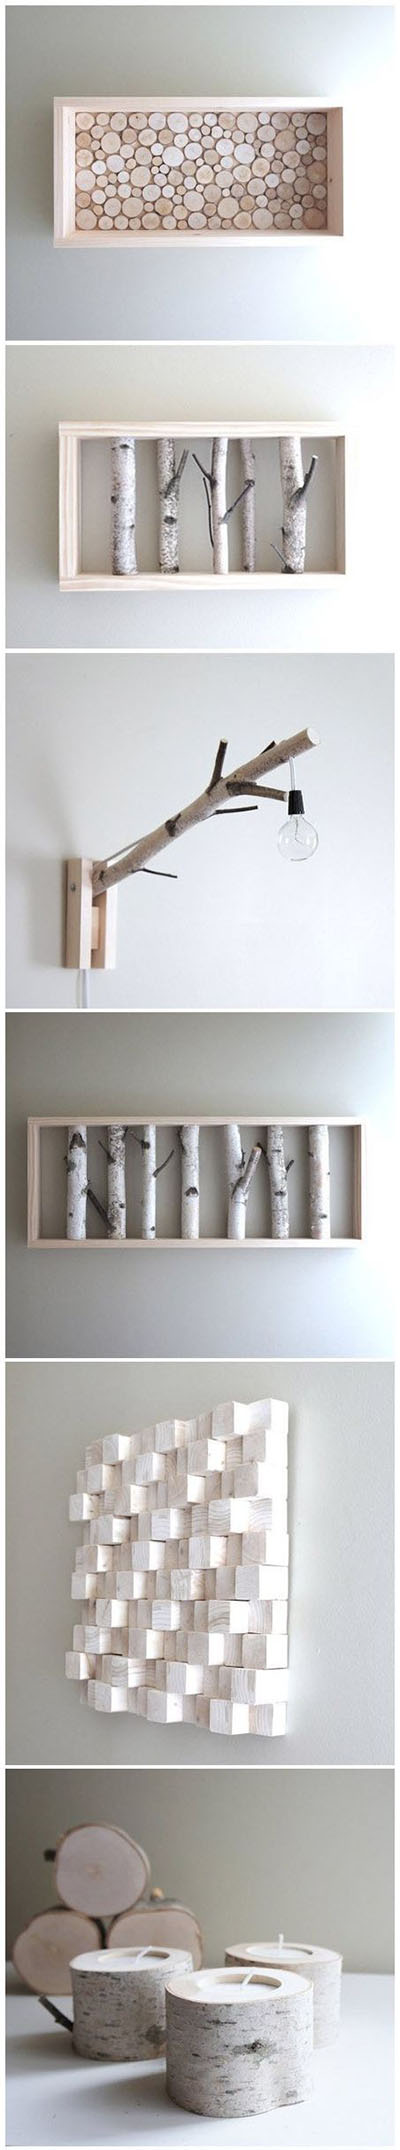 15 Wood Craft Ideas 3aa28ba4fb9